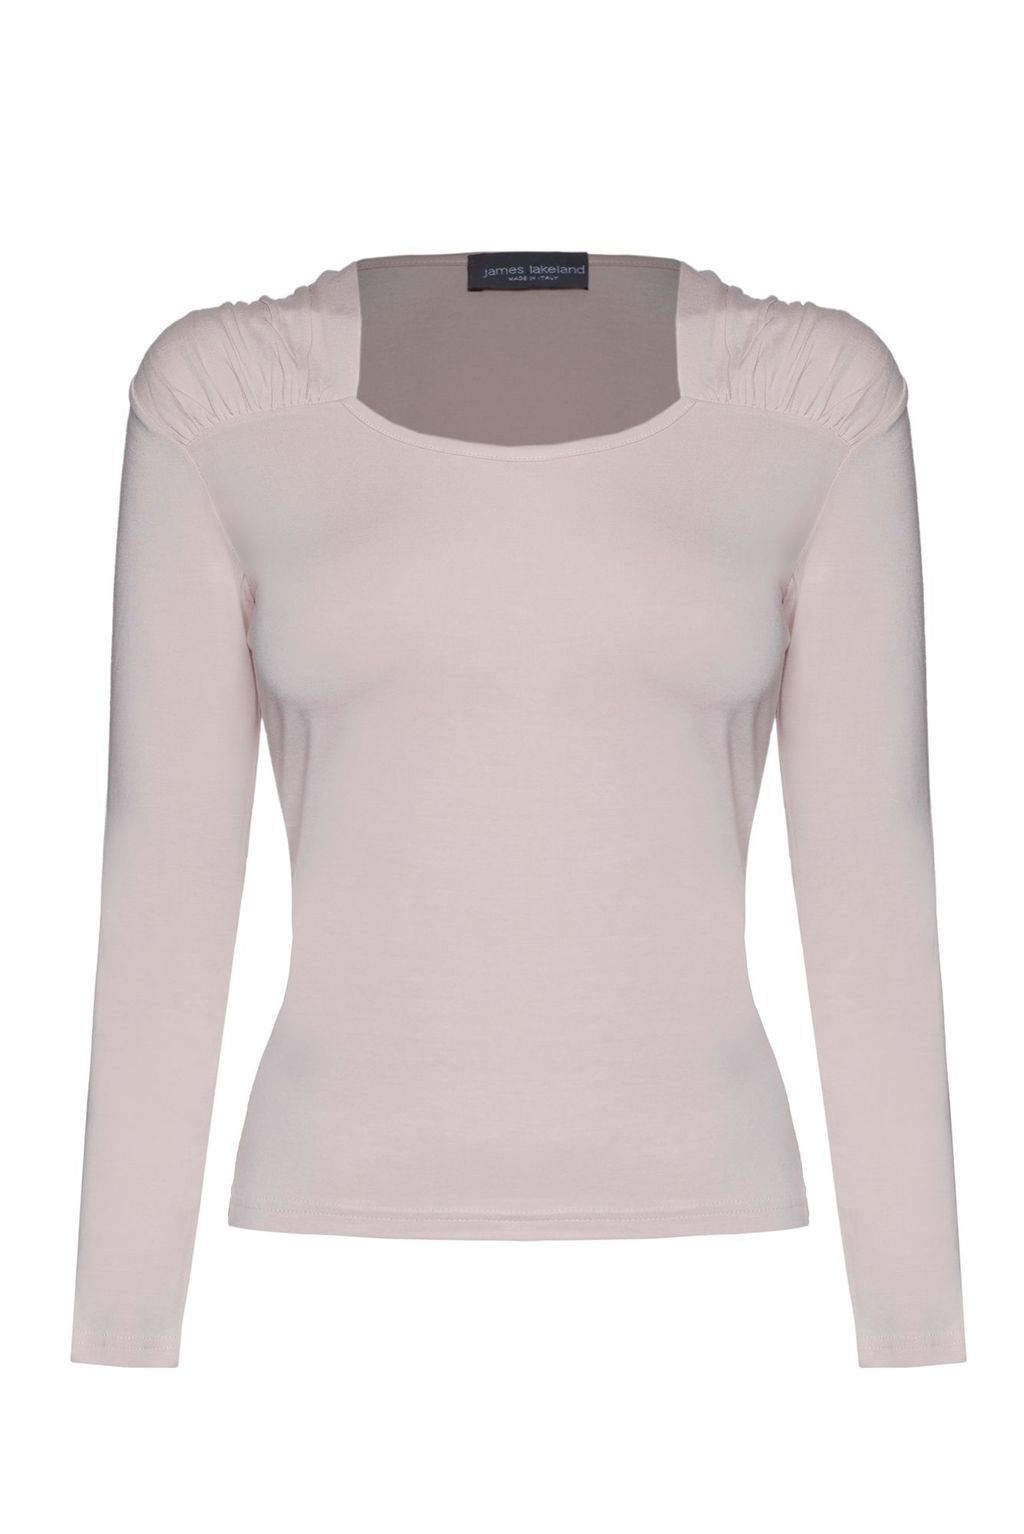 Square Neck T Shirt, Pink - pattern: plain; style: t-shirt; predominant colour: blush; occasions: casual, creative work; length: standard; neckline: scoop; fibres: viscose/rayon - stretch; fit: tight; sleeve length: long sleeve; sleeve style: standard; pattern type: fabric; texture group: jersey - stretchy/drapey; season: a/w 2015; wardrobe: basic